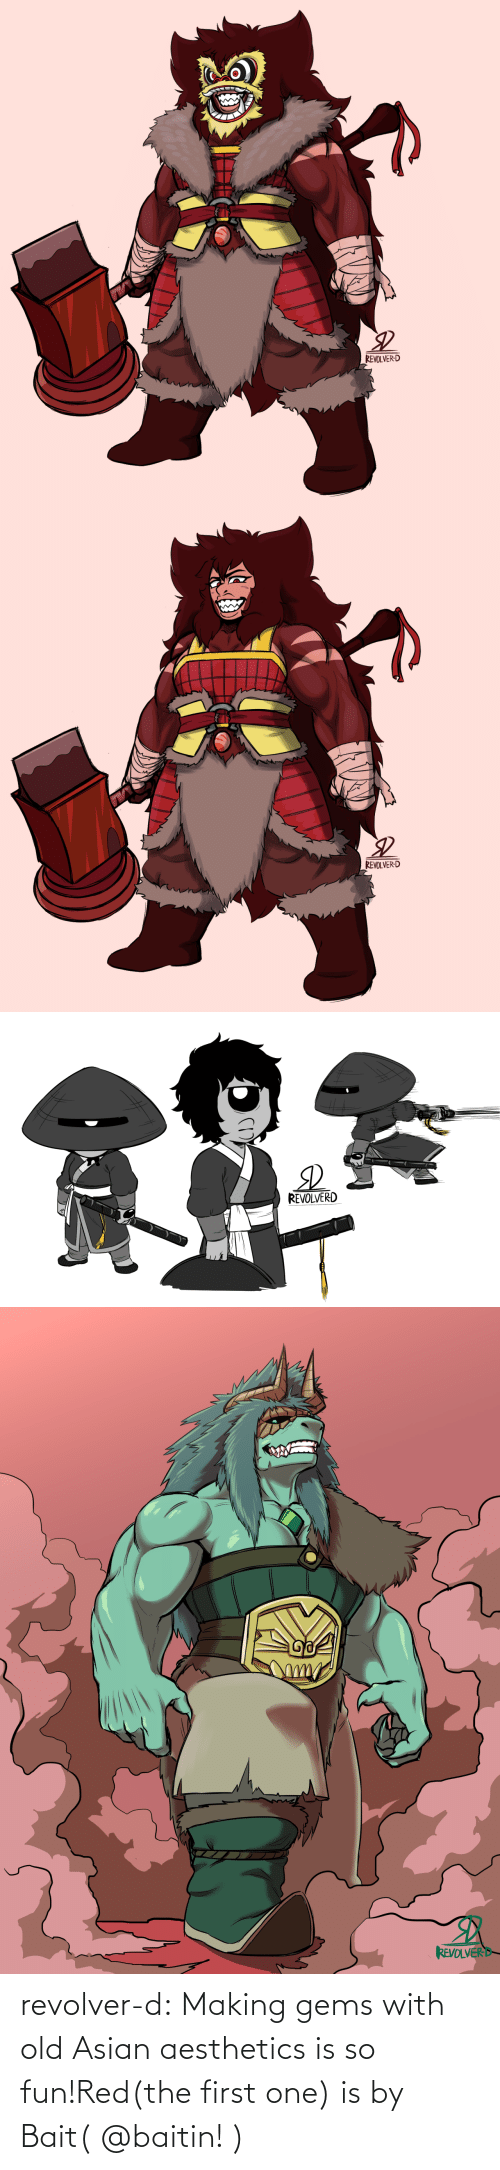 Asian: revolver-d:  Making gems with old Asian aesthetics is so fun!Red(the first one) is by Bait( @baitin! )